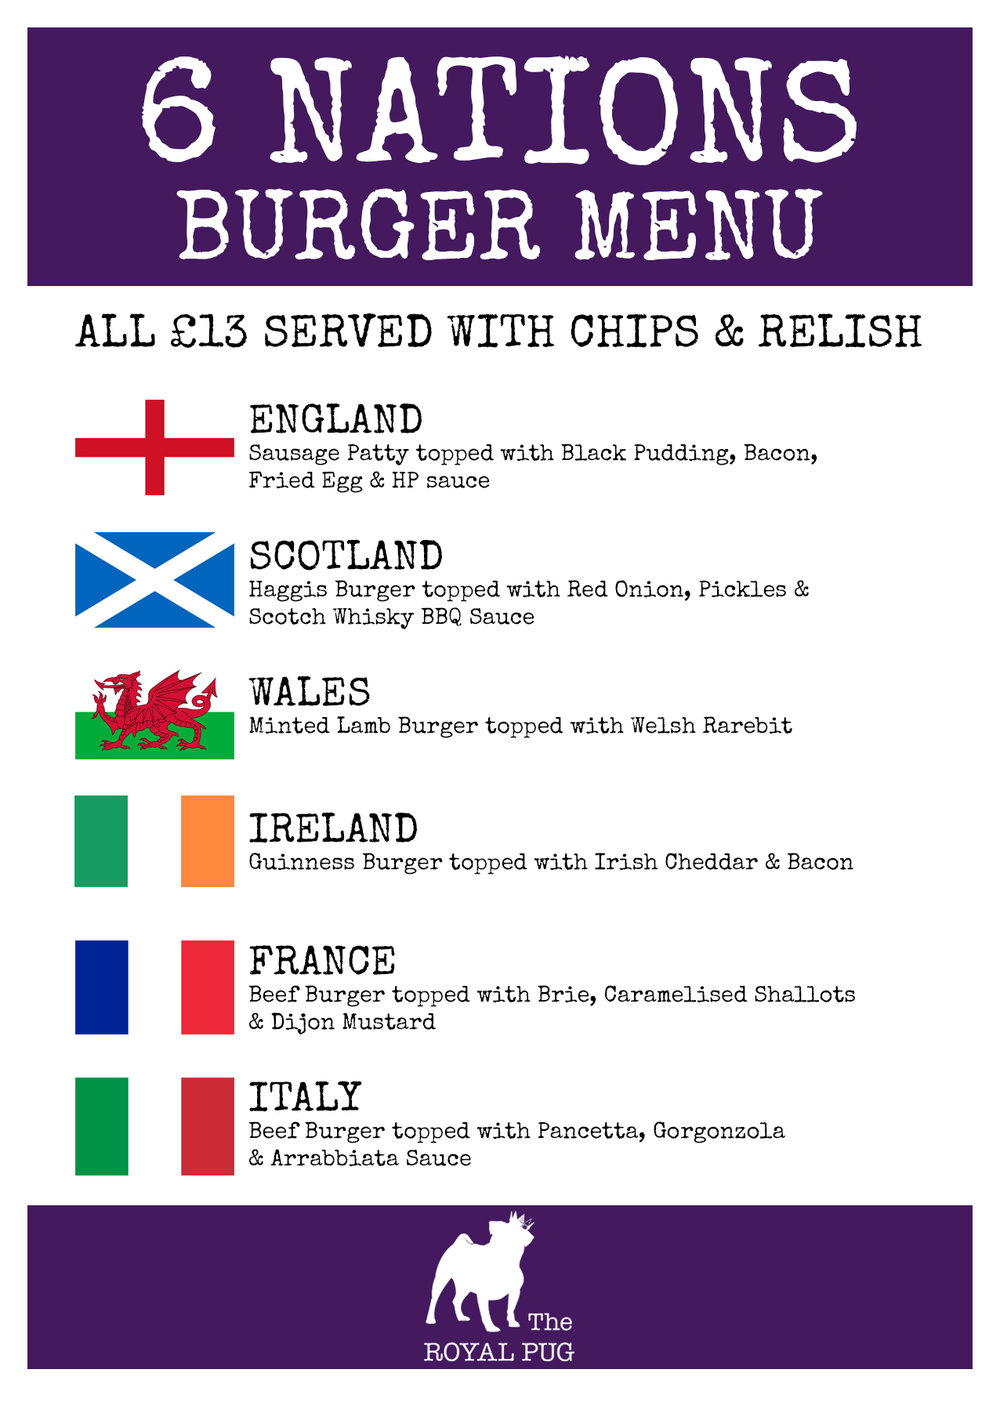 6 nations burger menu LR.jpg